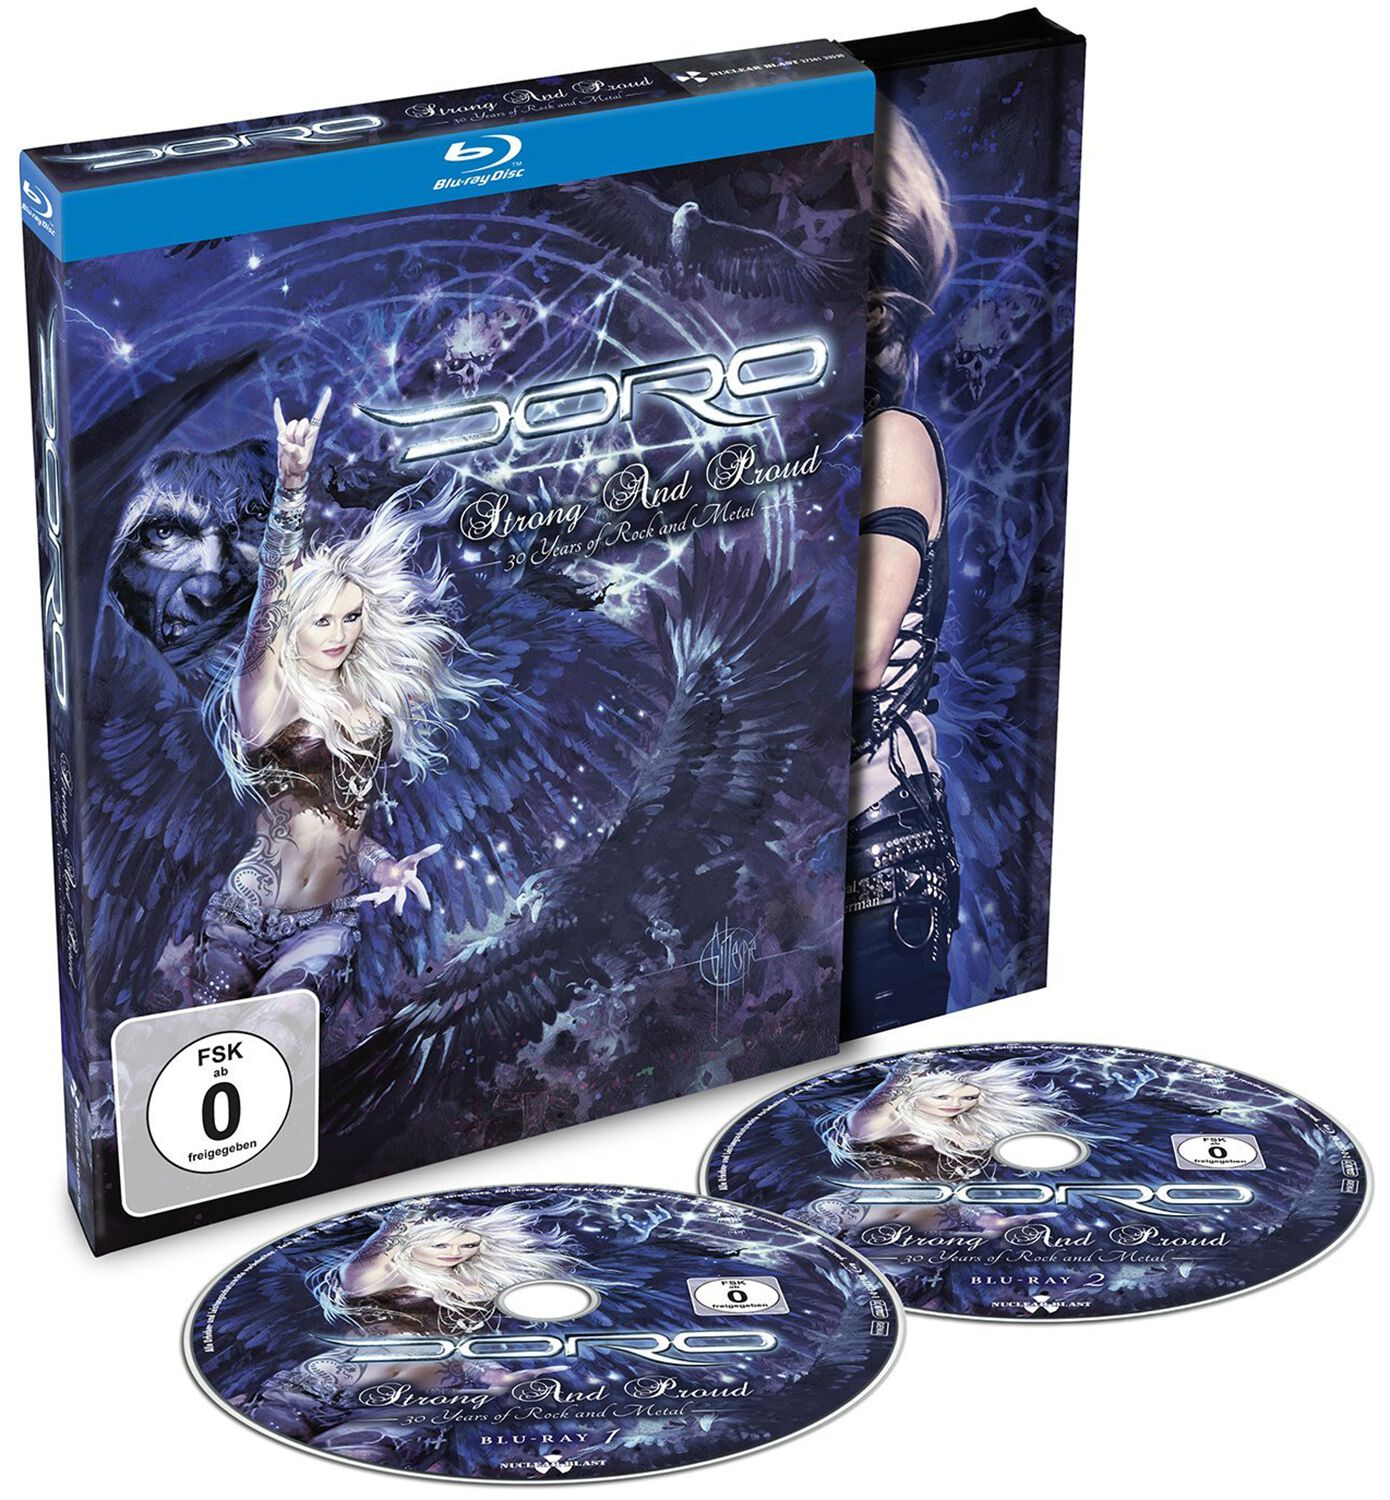 Image of Doro Strong and proud 2-Blu-ray Standard